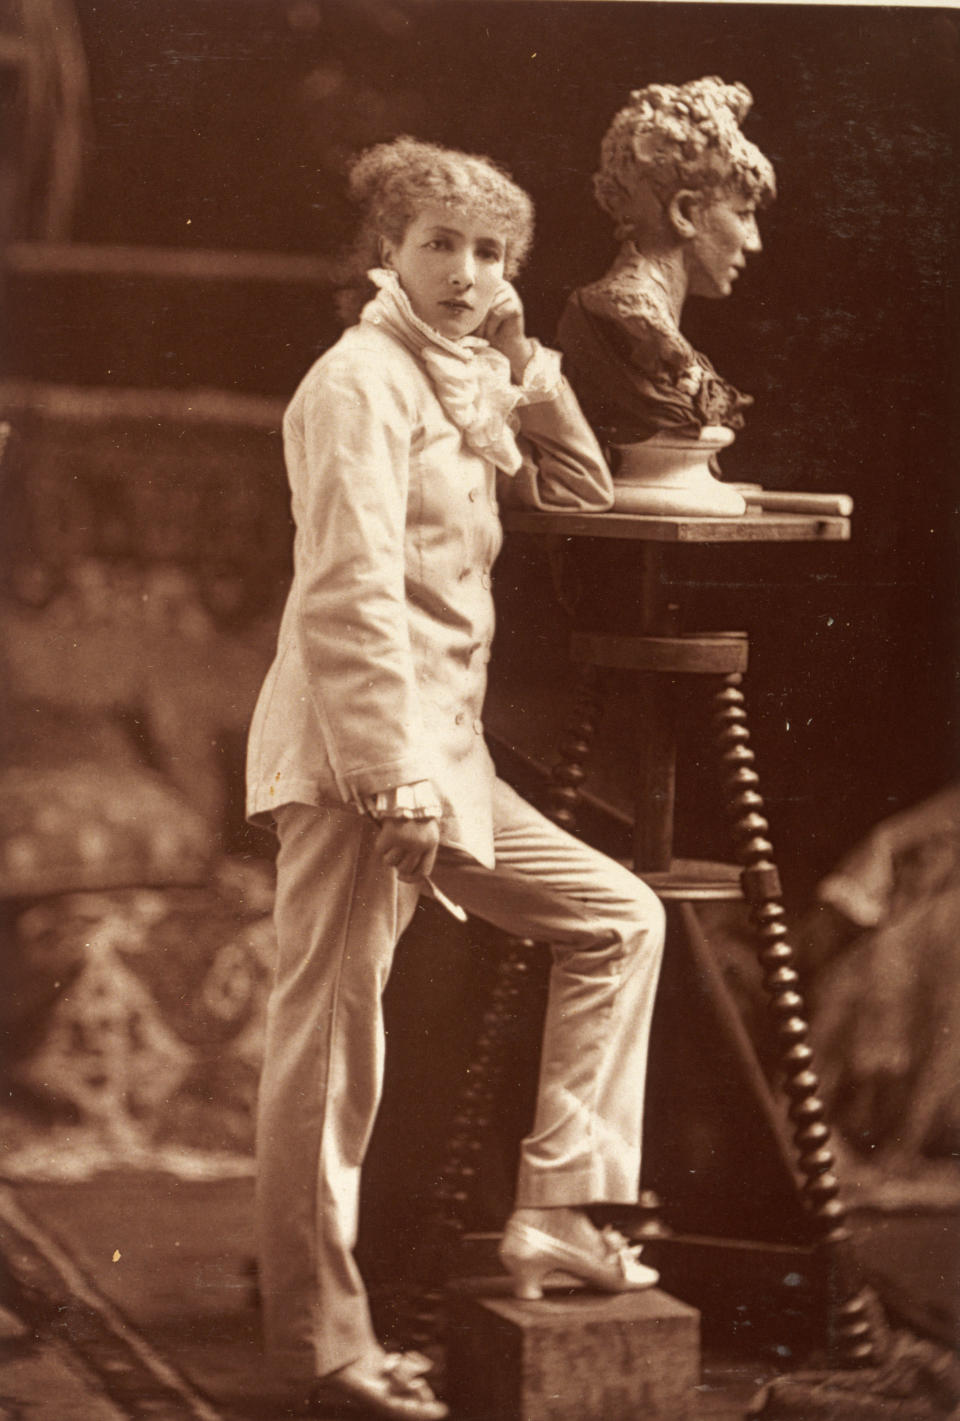 Actress Sarah Bernhardt wearing a trouser suit as she sculpts a self-portrait, in a photo from the late 19th century. (Photo: Museum of London/Heritage Images/Getty Images)